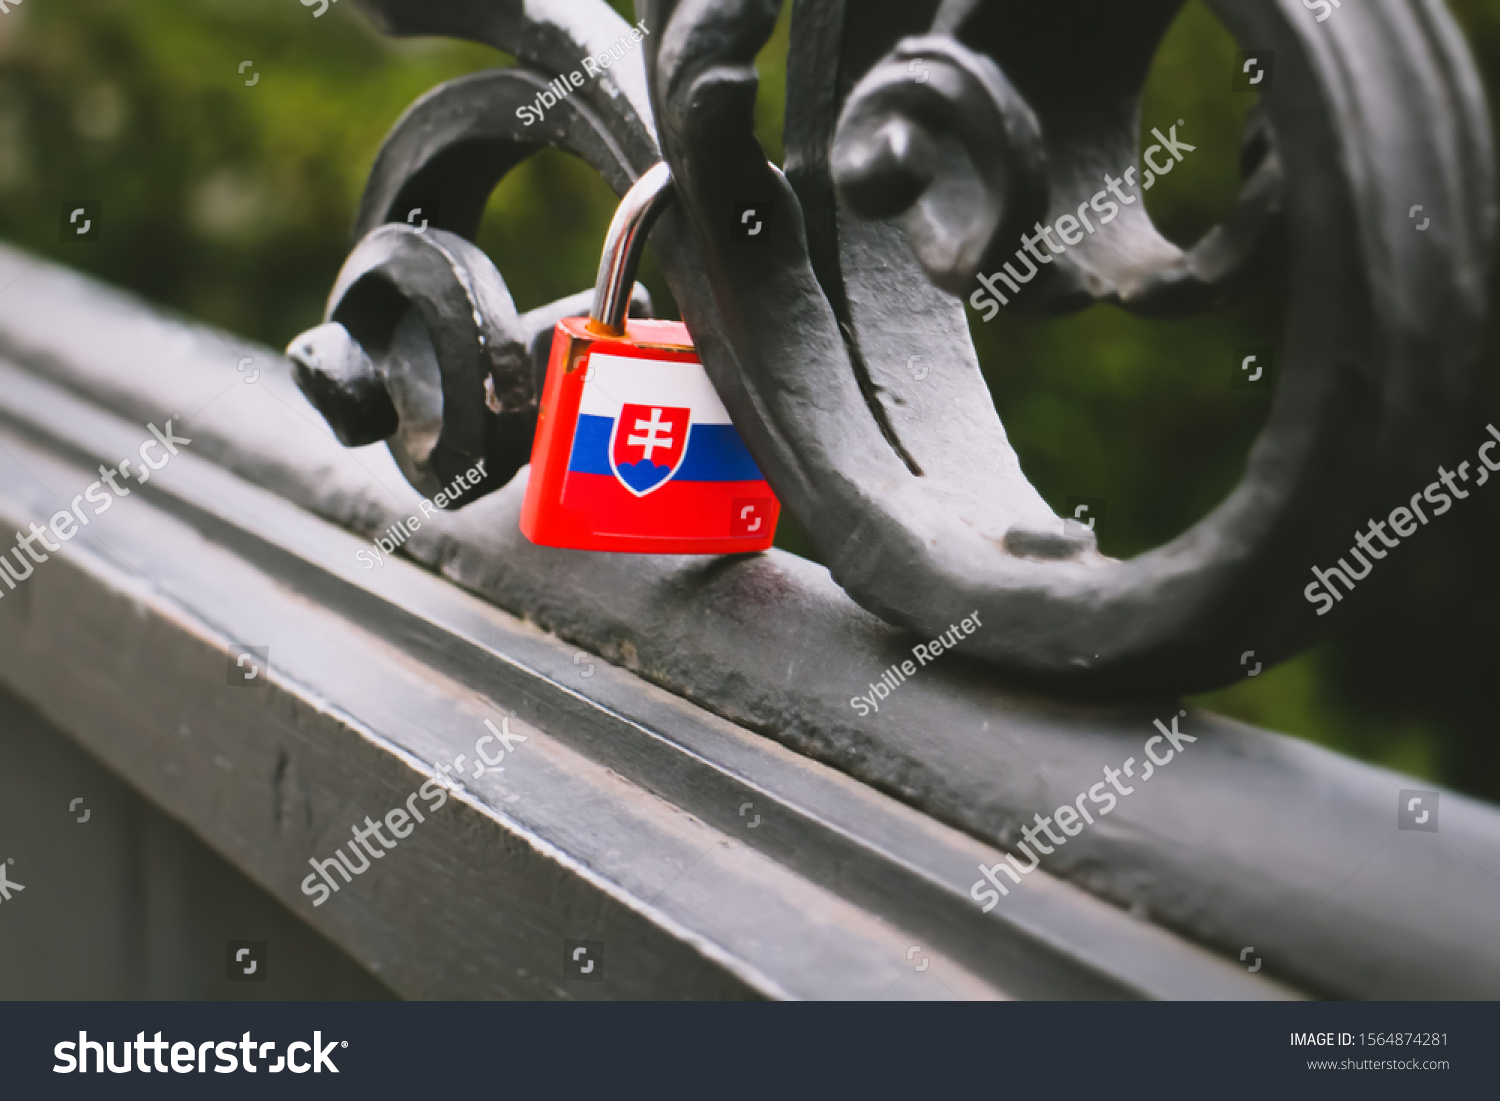 stock-photo-a-slovak-flag-padlock-is-att